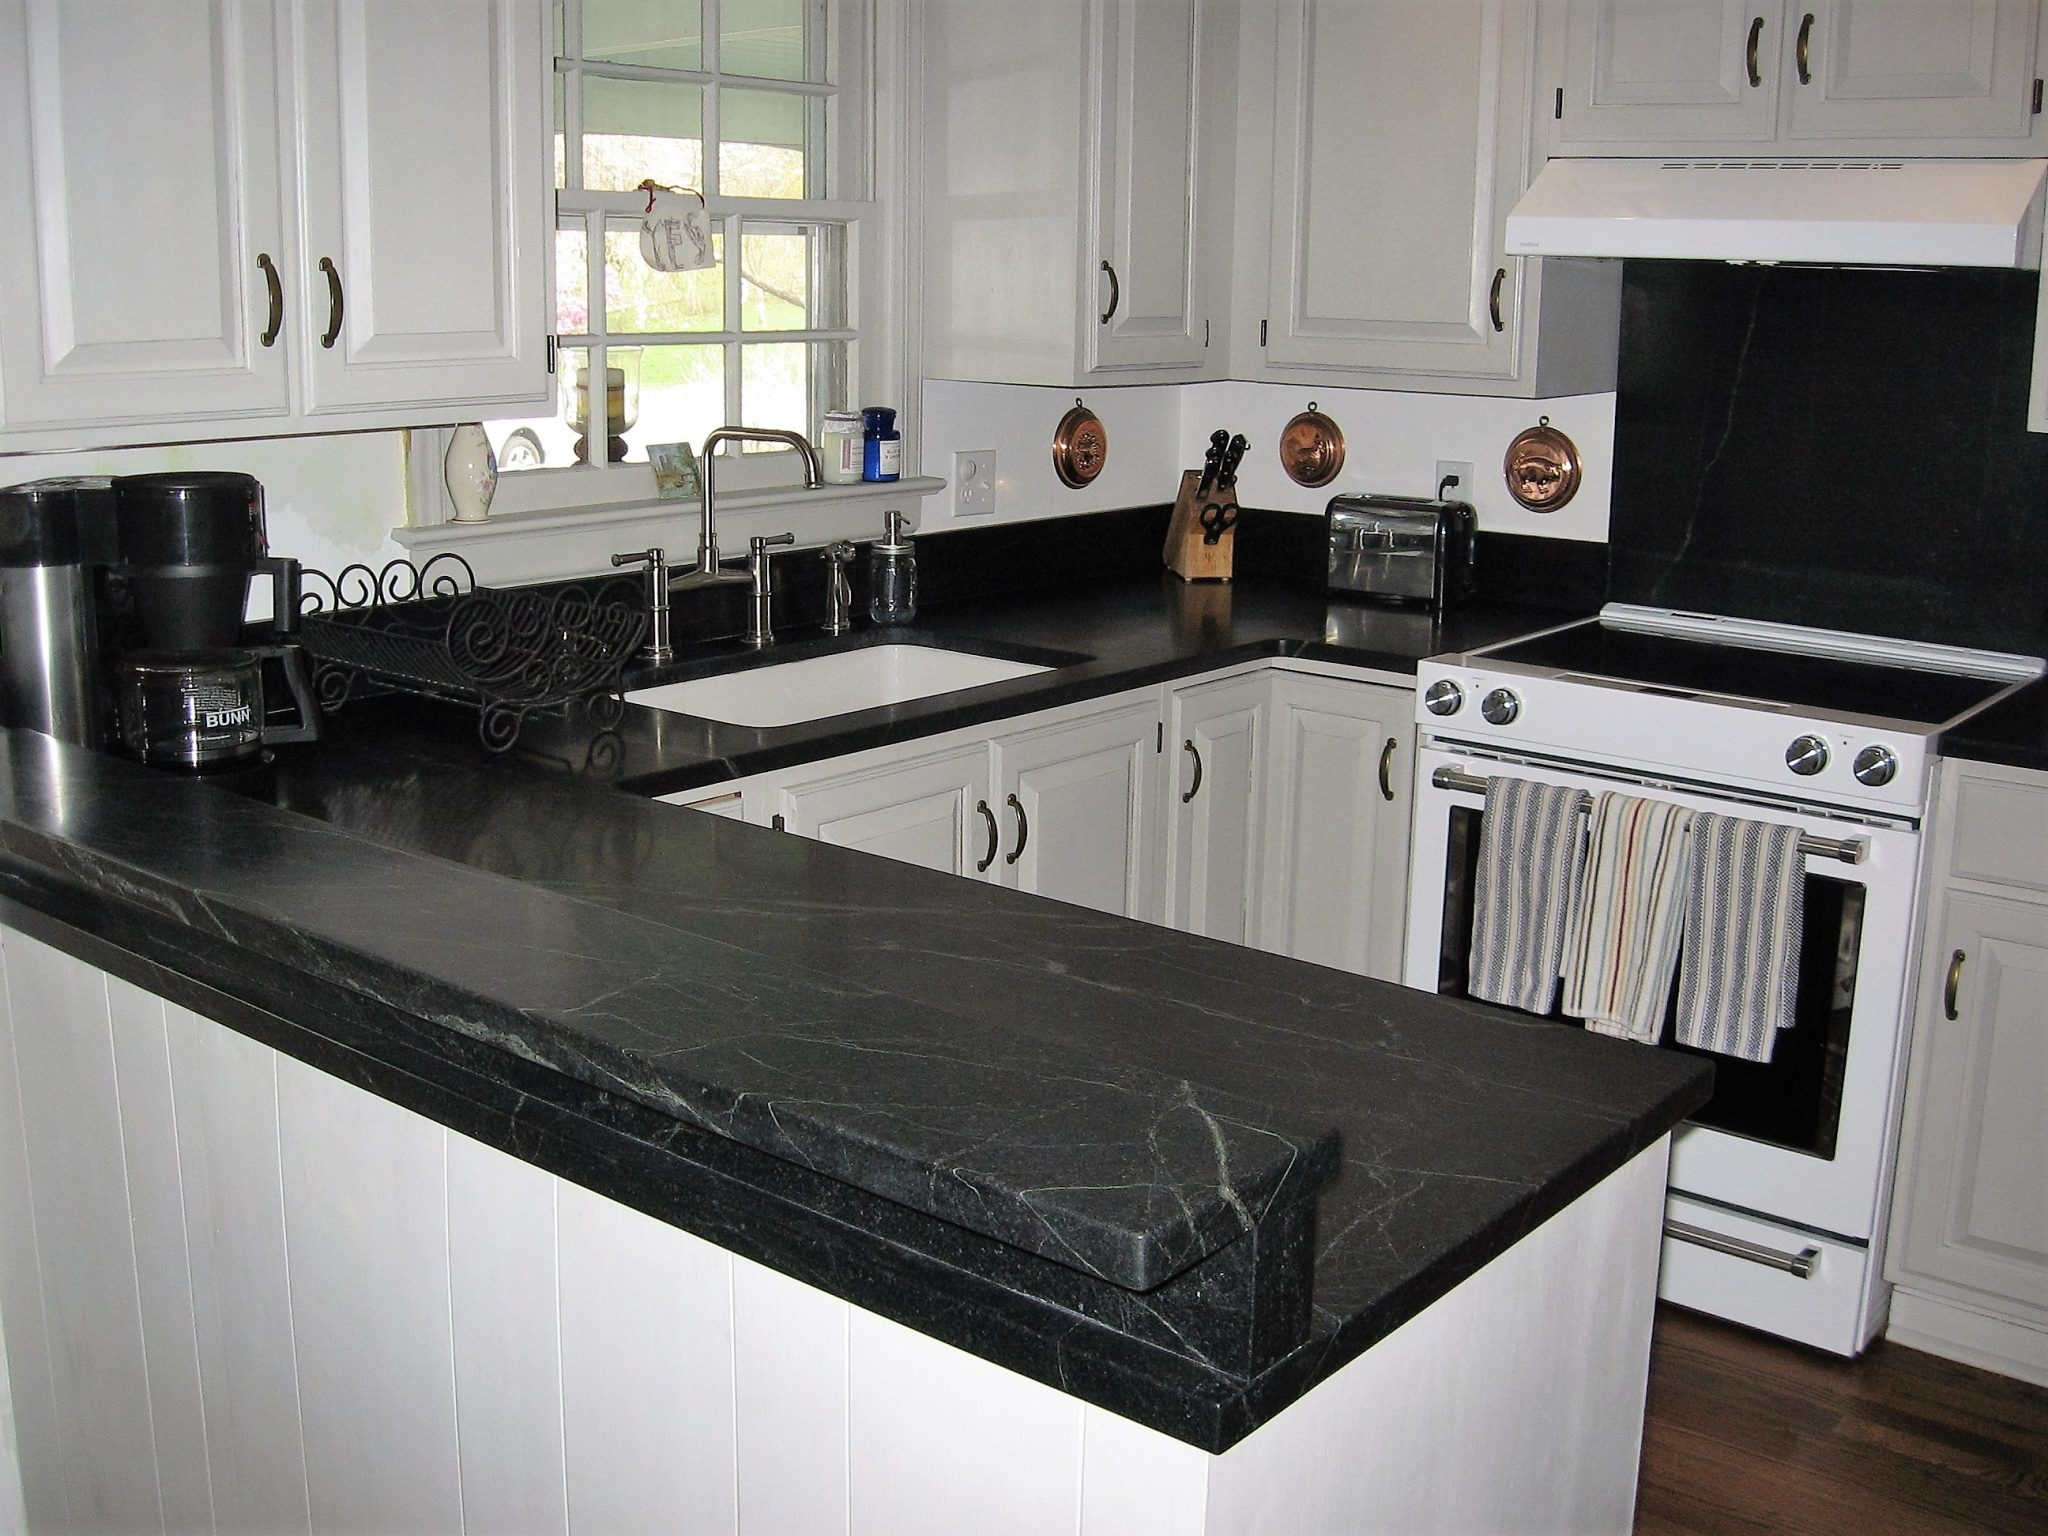 Soapstone Countertop Care How To Upgrade Your Home With Soapstone Countertops The